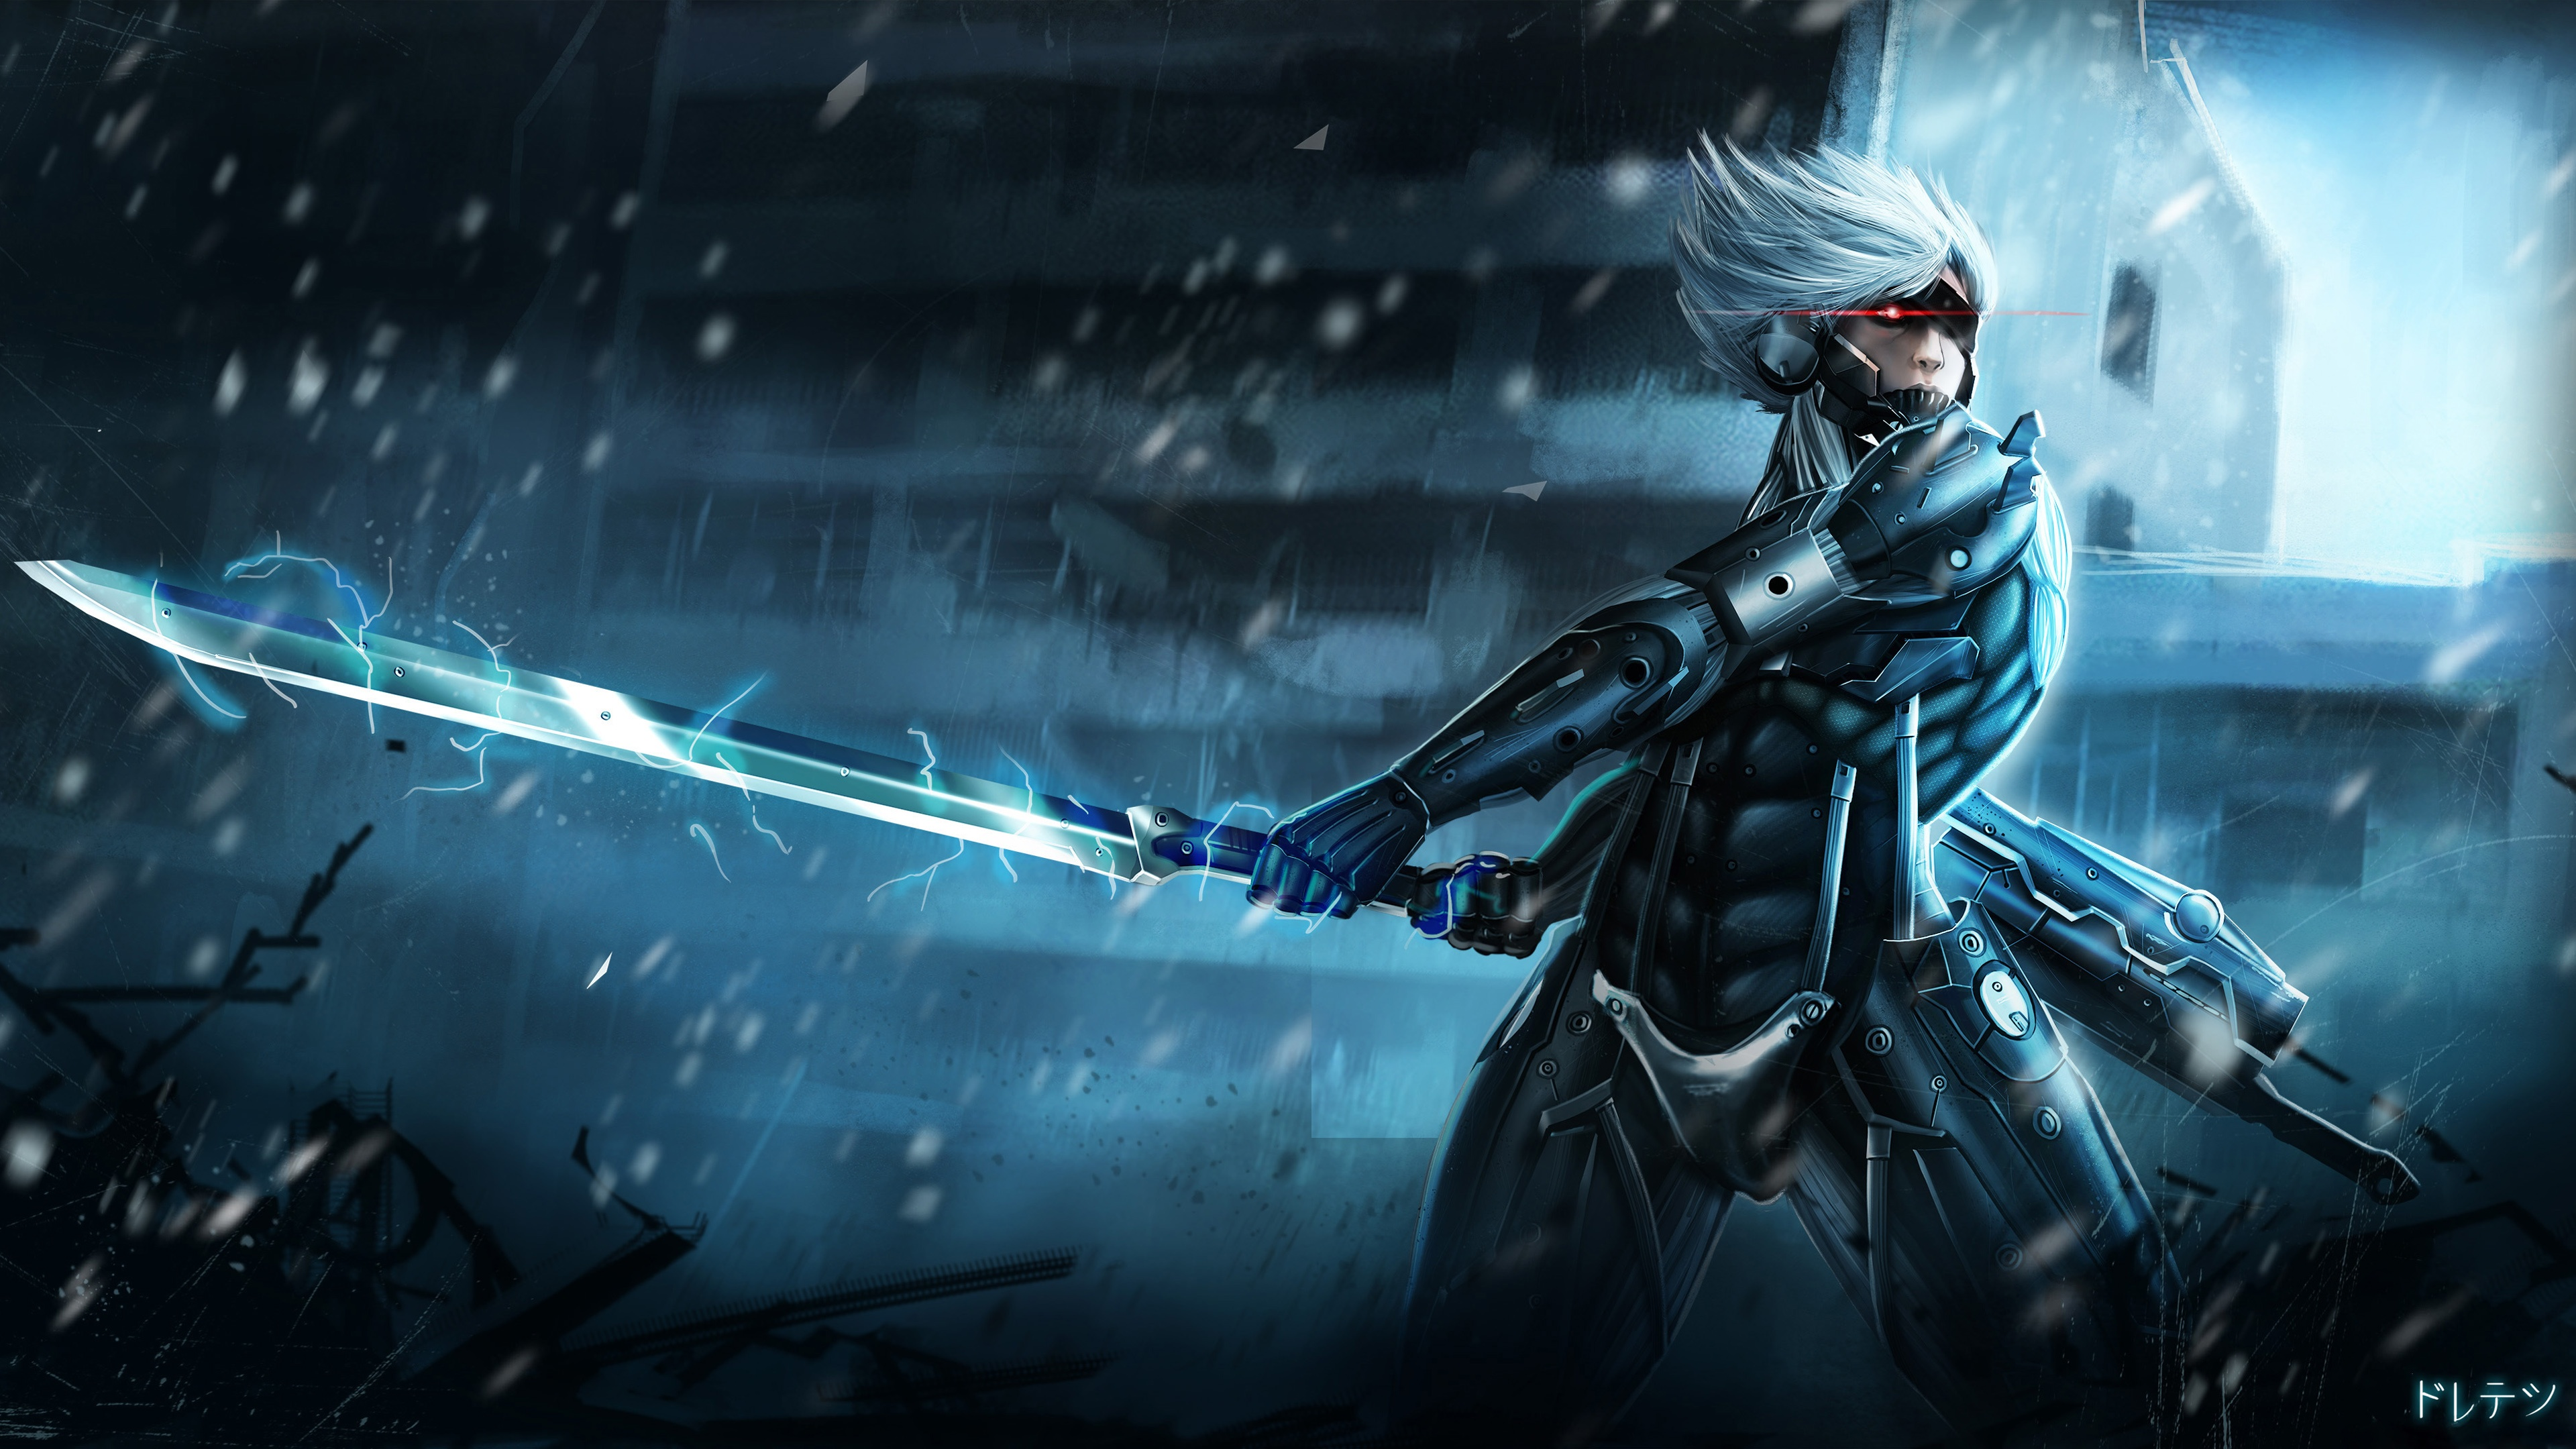 Metal gear rising raiden 4k ultra hd wallpaper and background image video game metal gear rising revengeance wallpaper voltagebd Choice Image